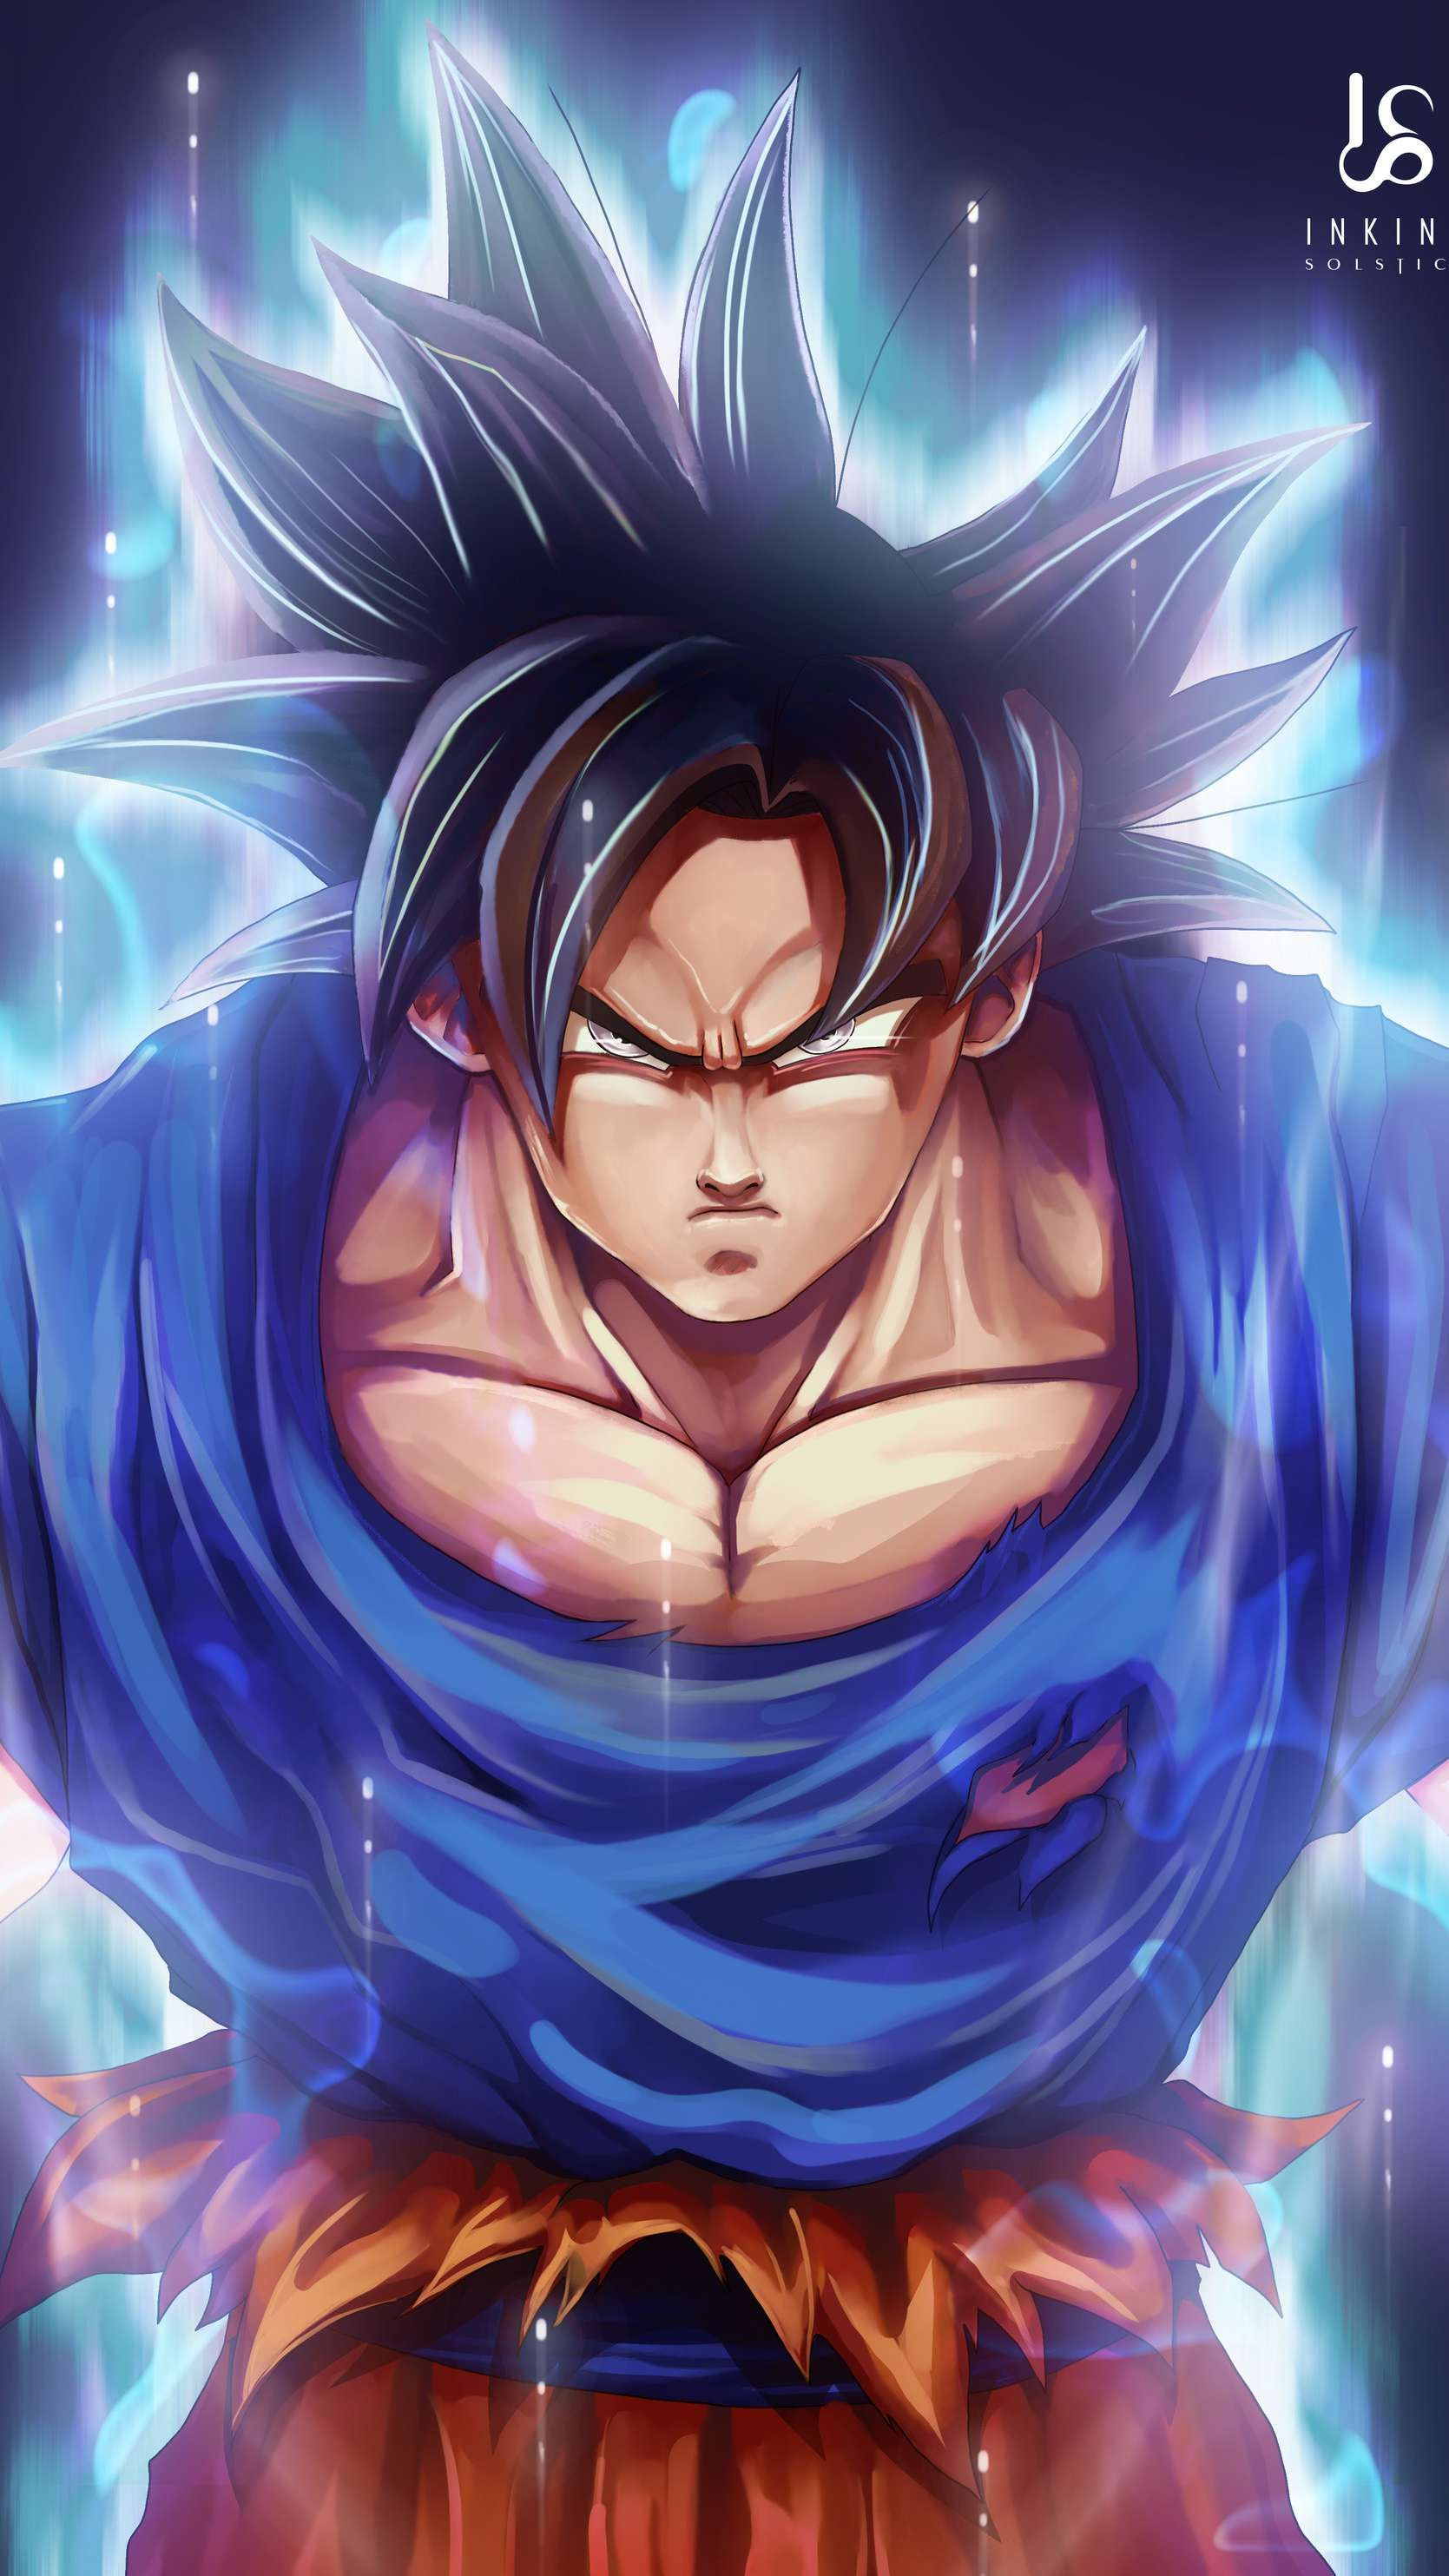 Goku Dragon Ball Z Wallpaper - iPhone Wallpapers